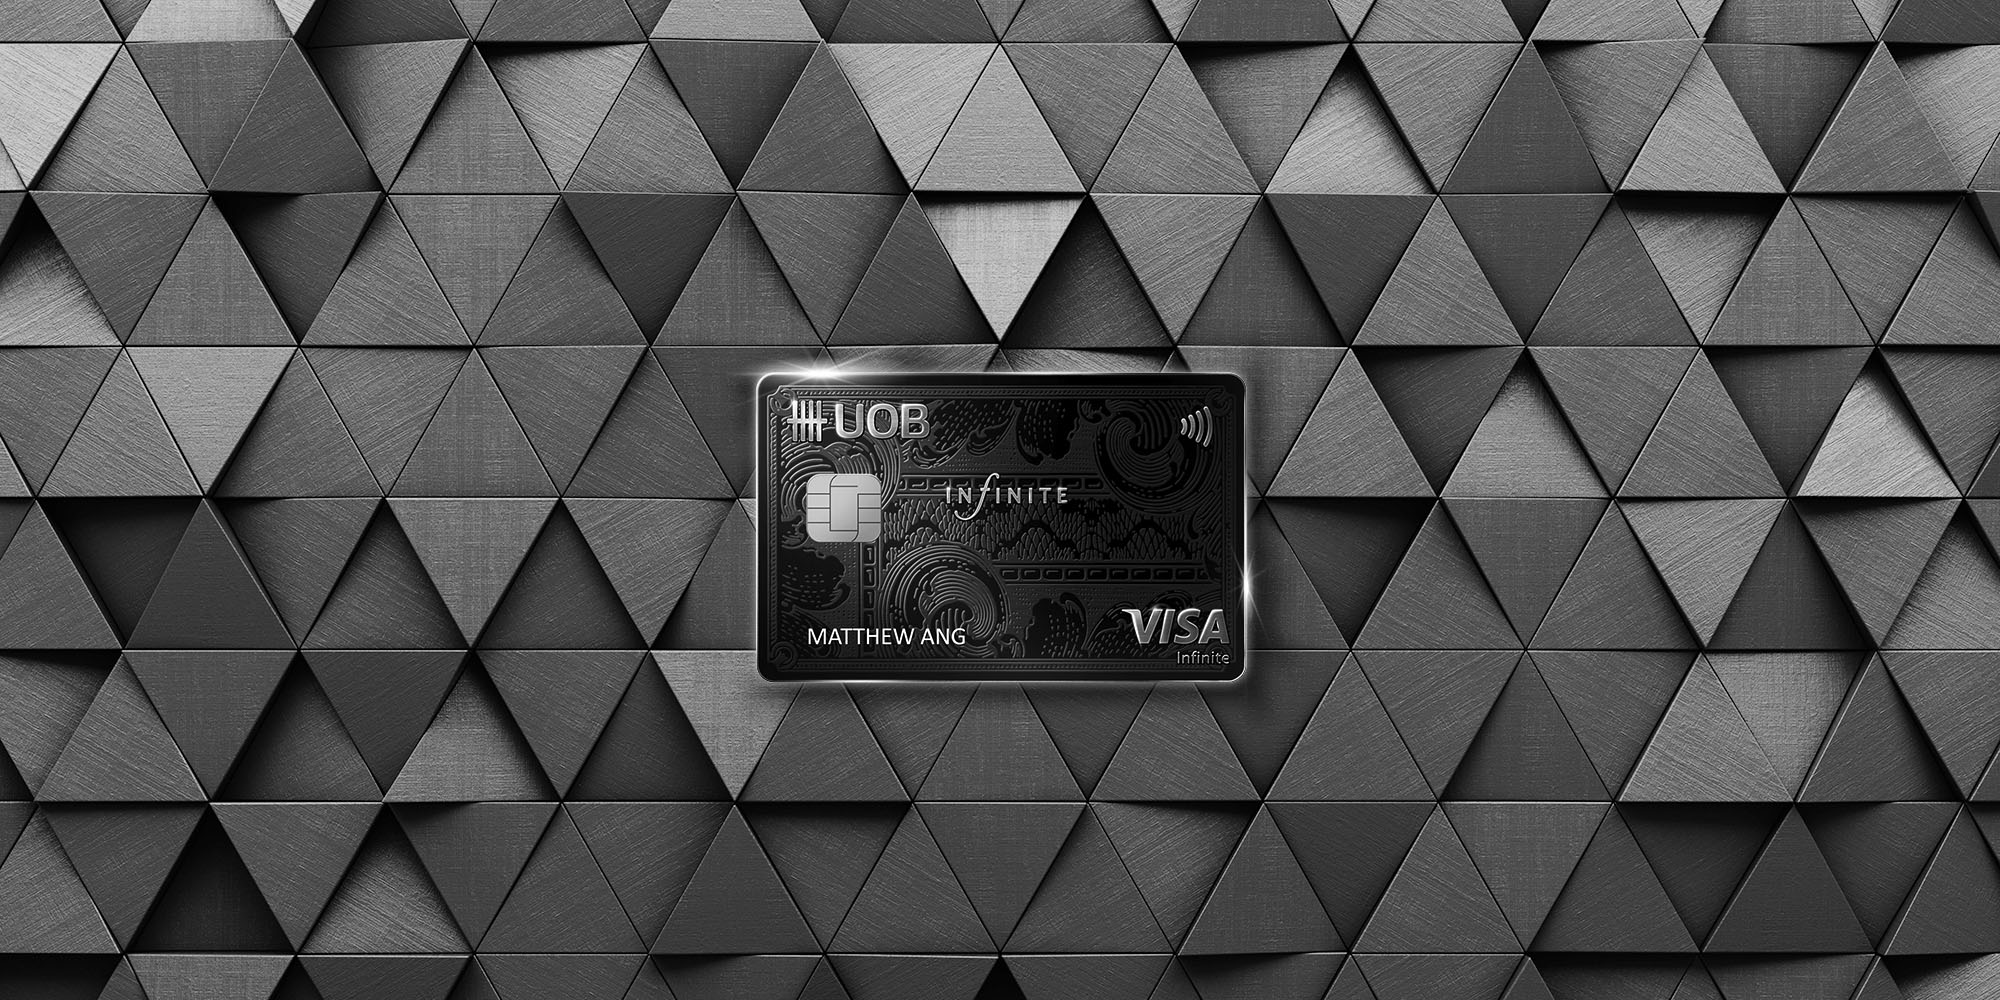 Targeted: UOB Visa Infinite cardholders can buy miles for 1.9 cents each